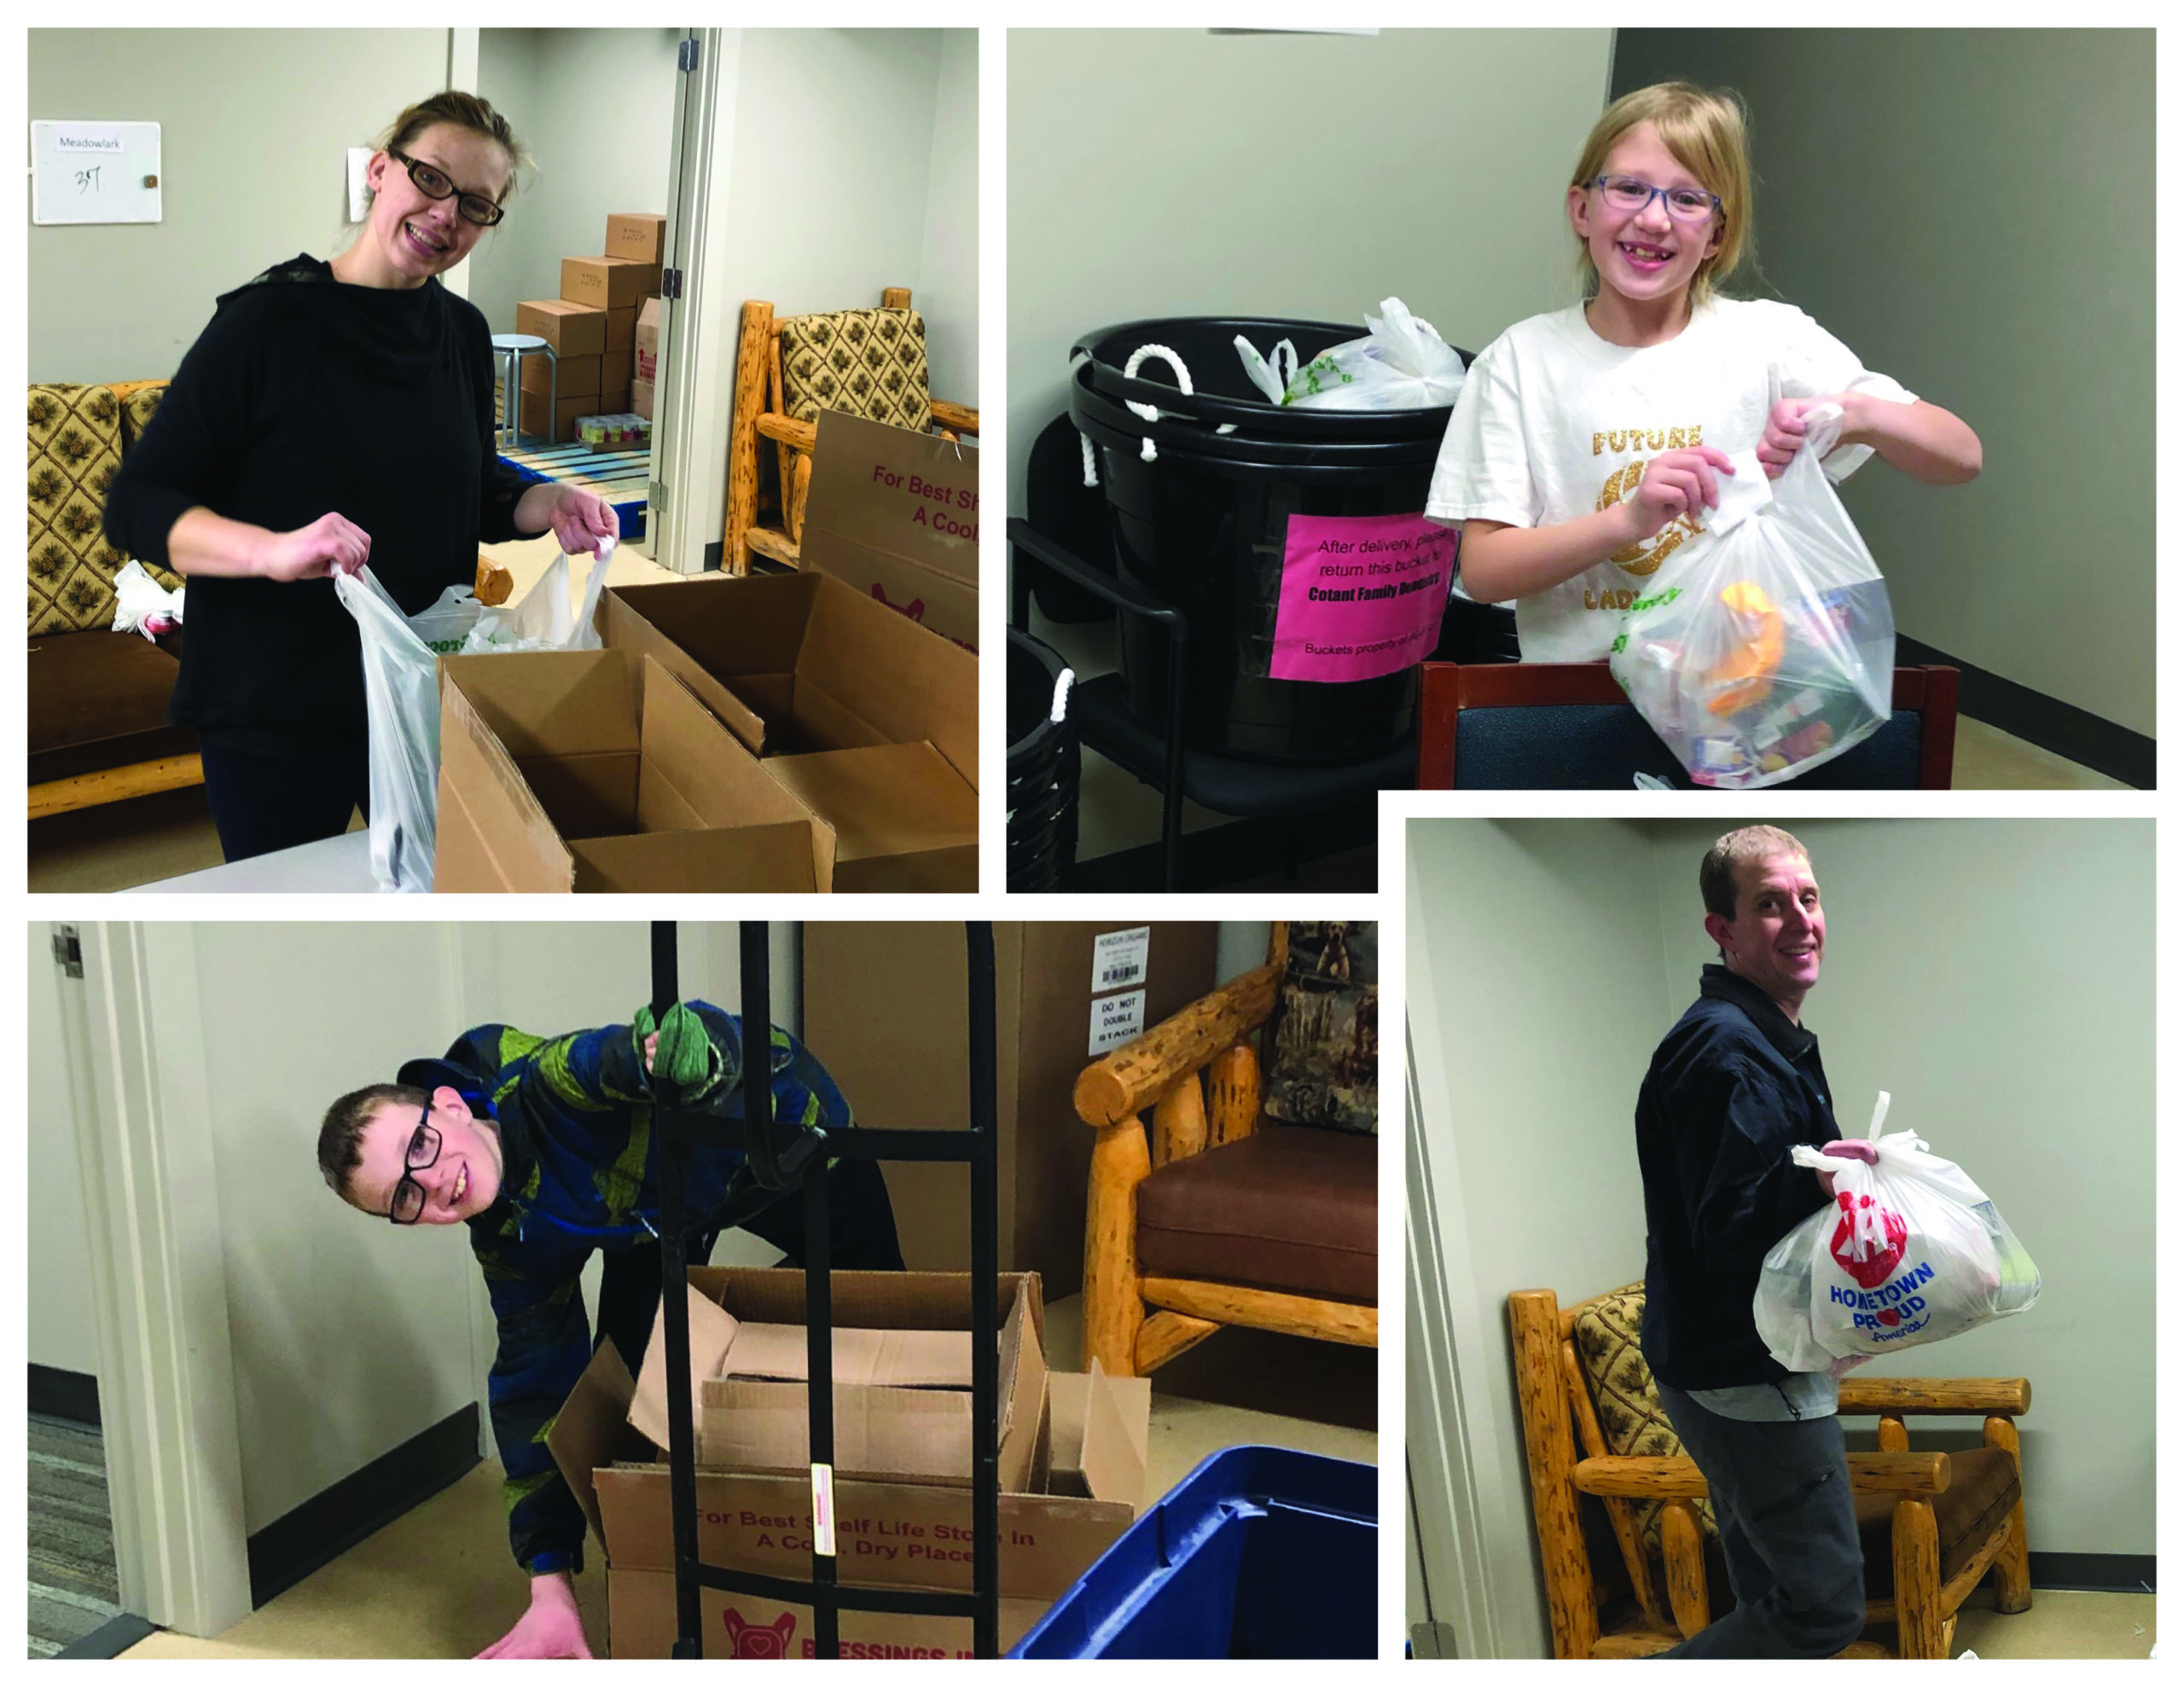 Cotant family packs weekend meals for students